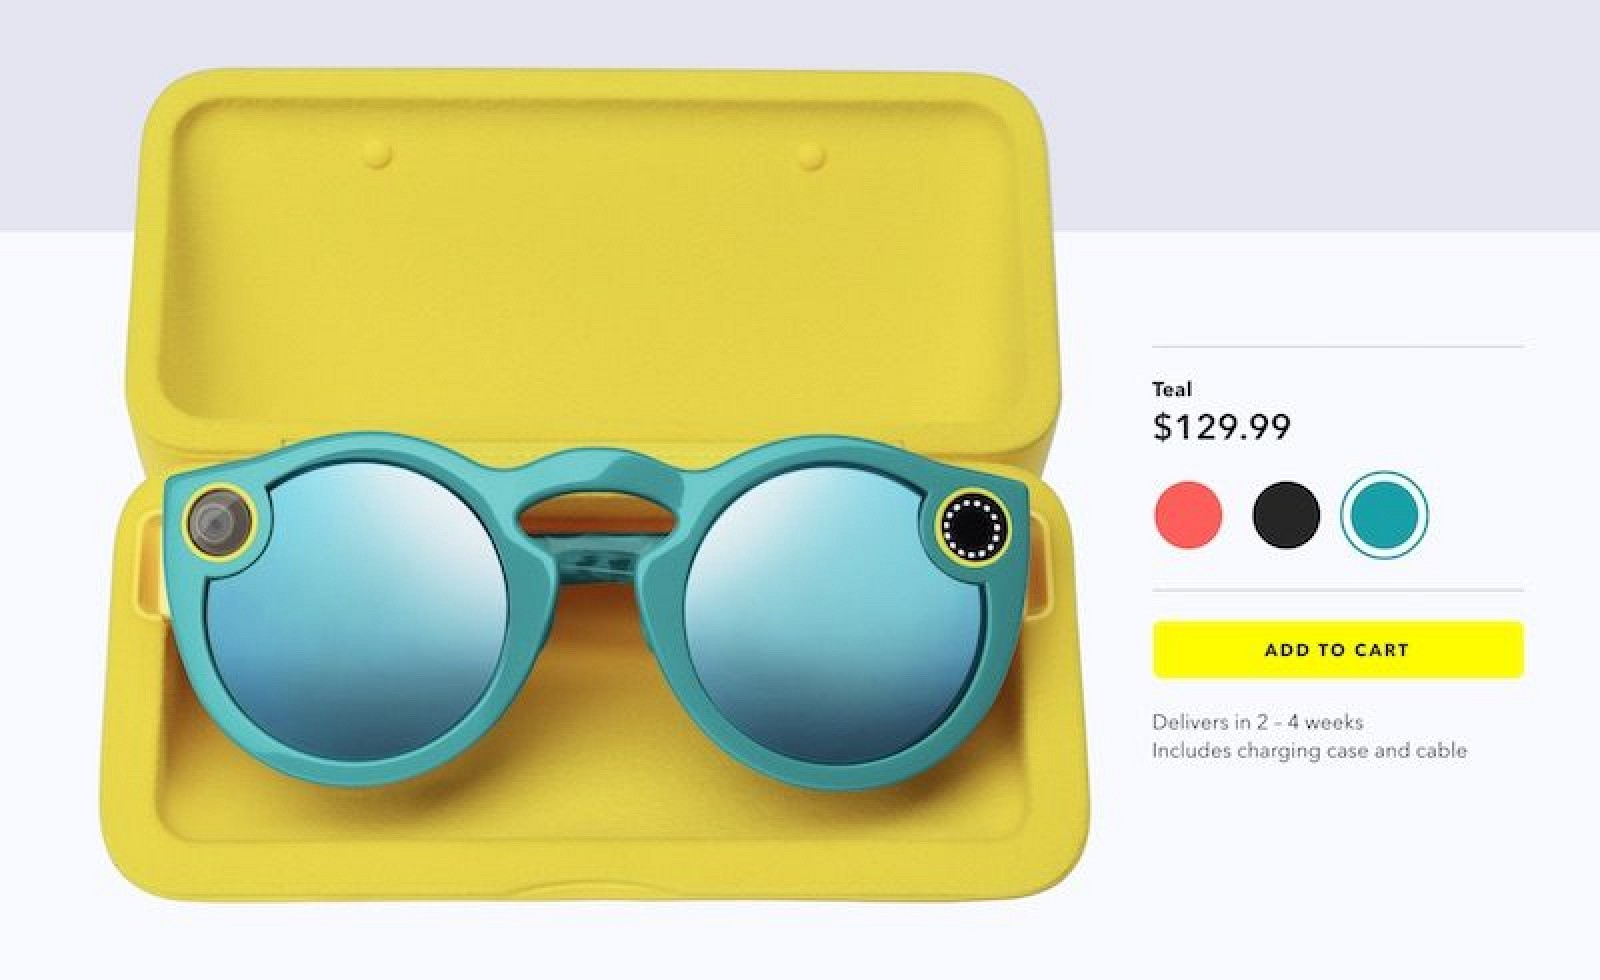 Snapchat Spectacles Now Available to Purchase Online for $130